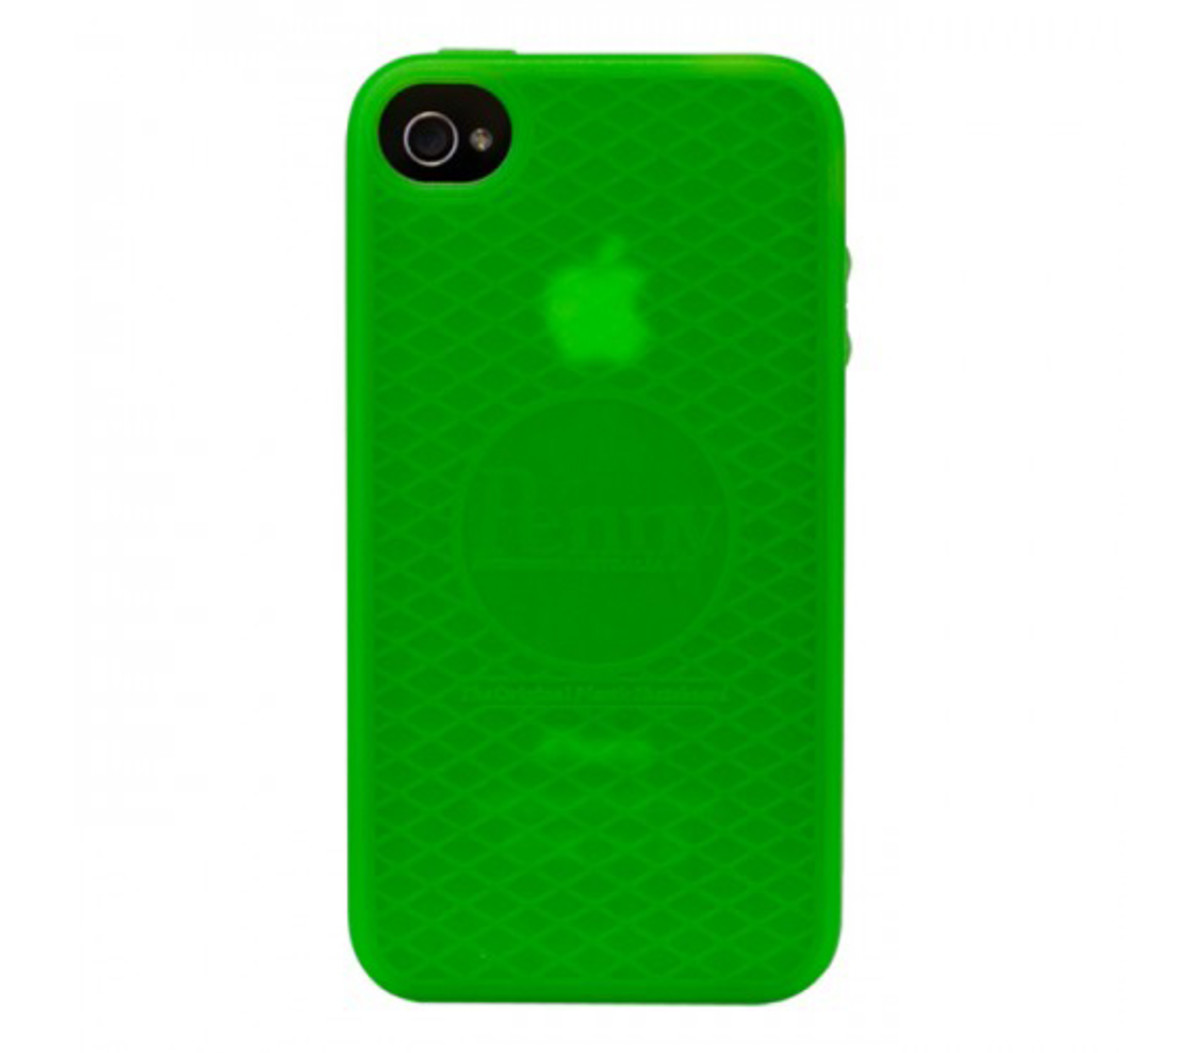 penny-skateboards-iphone-cover-07